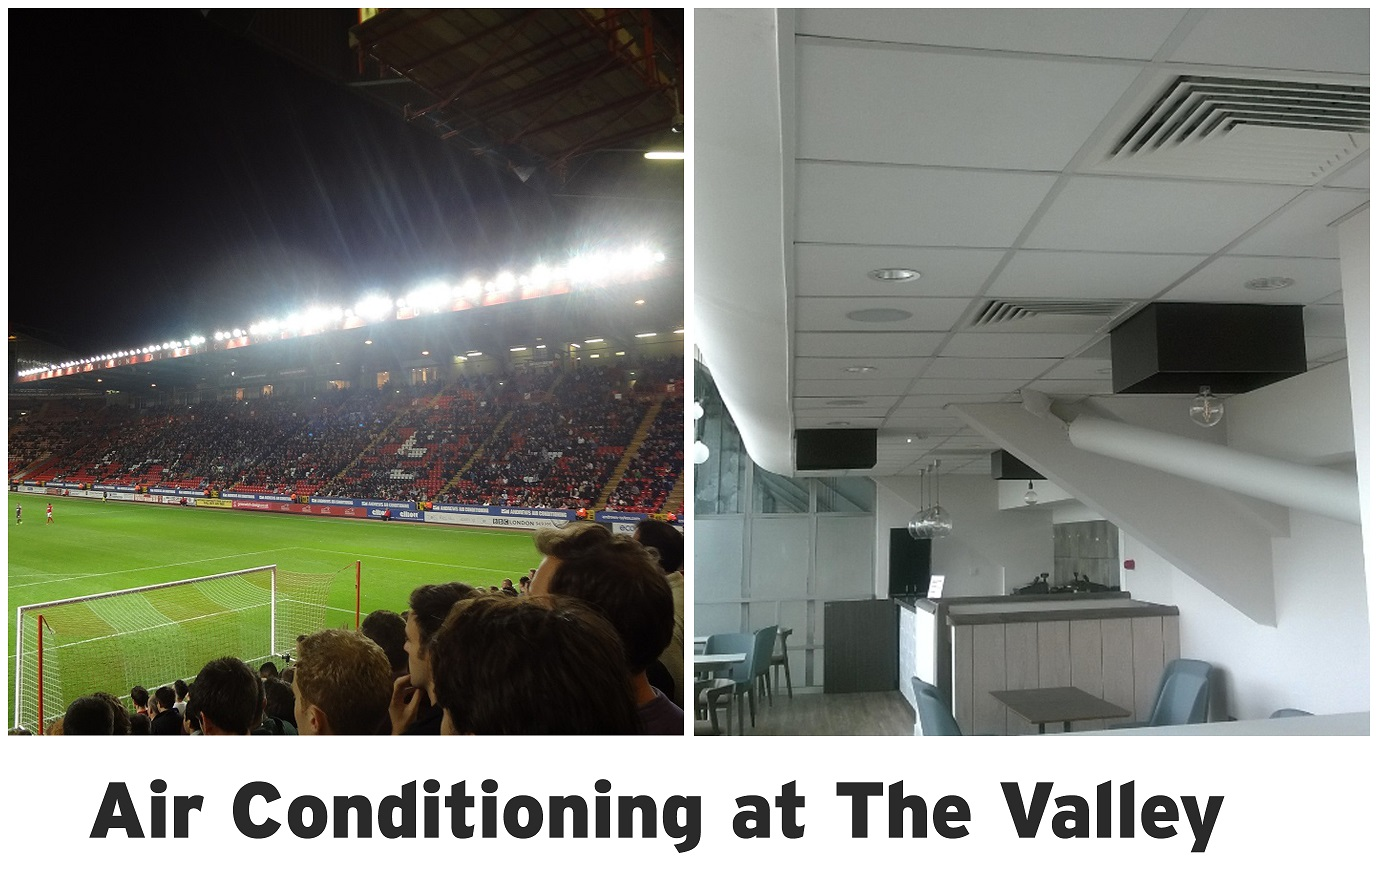 Air Conditioning at The Valley